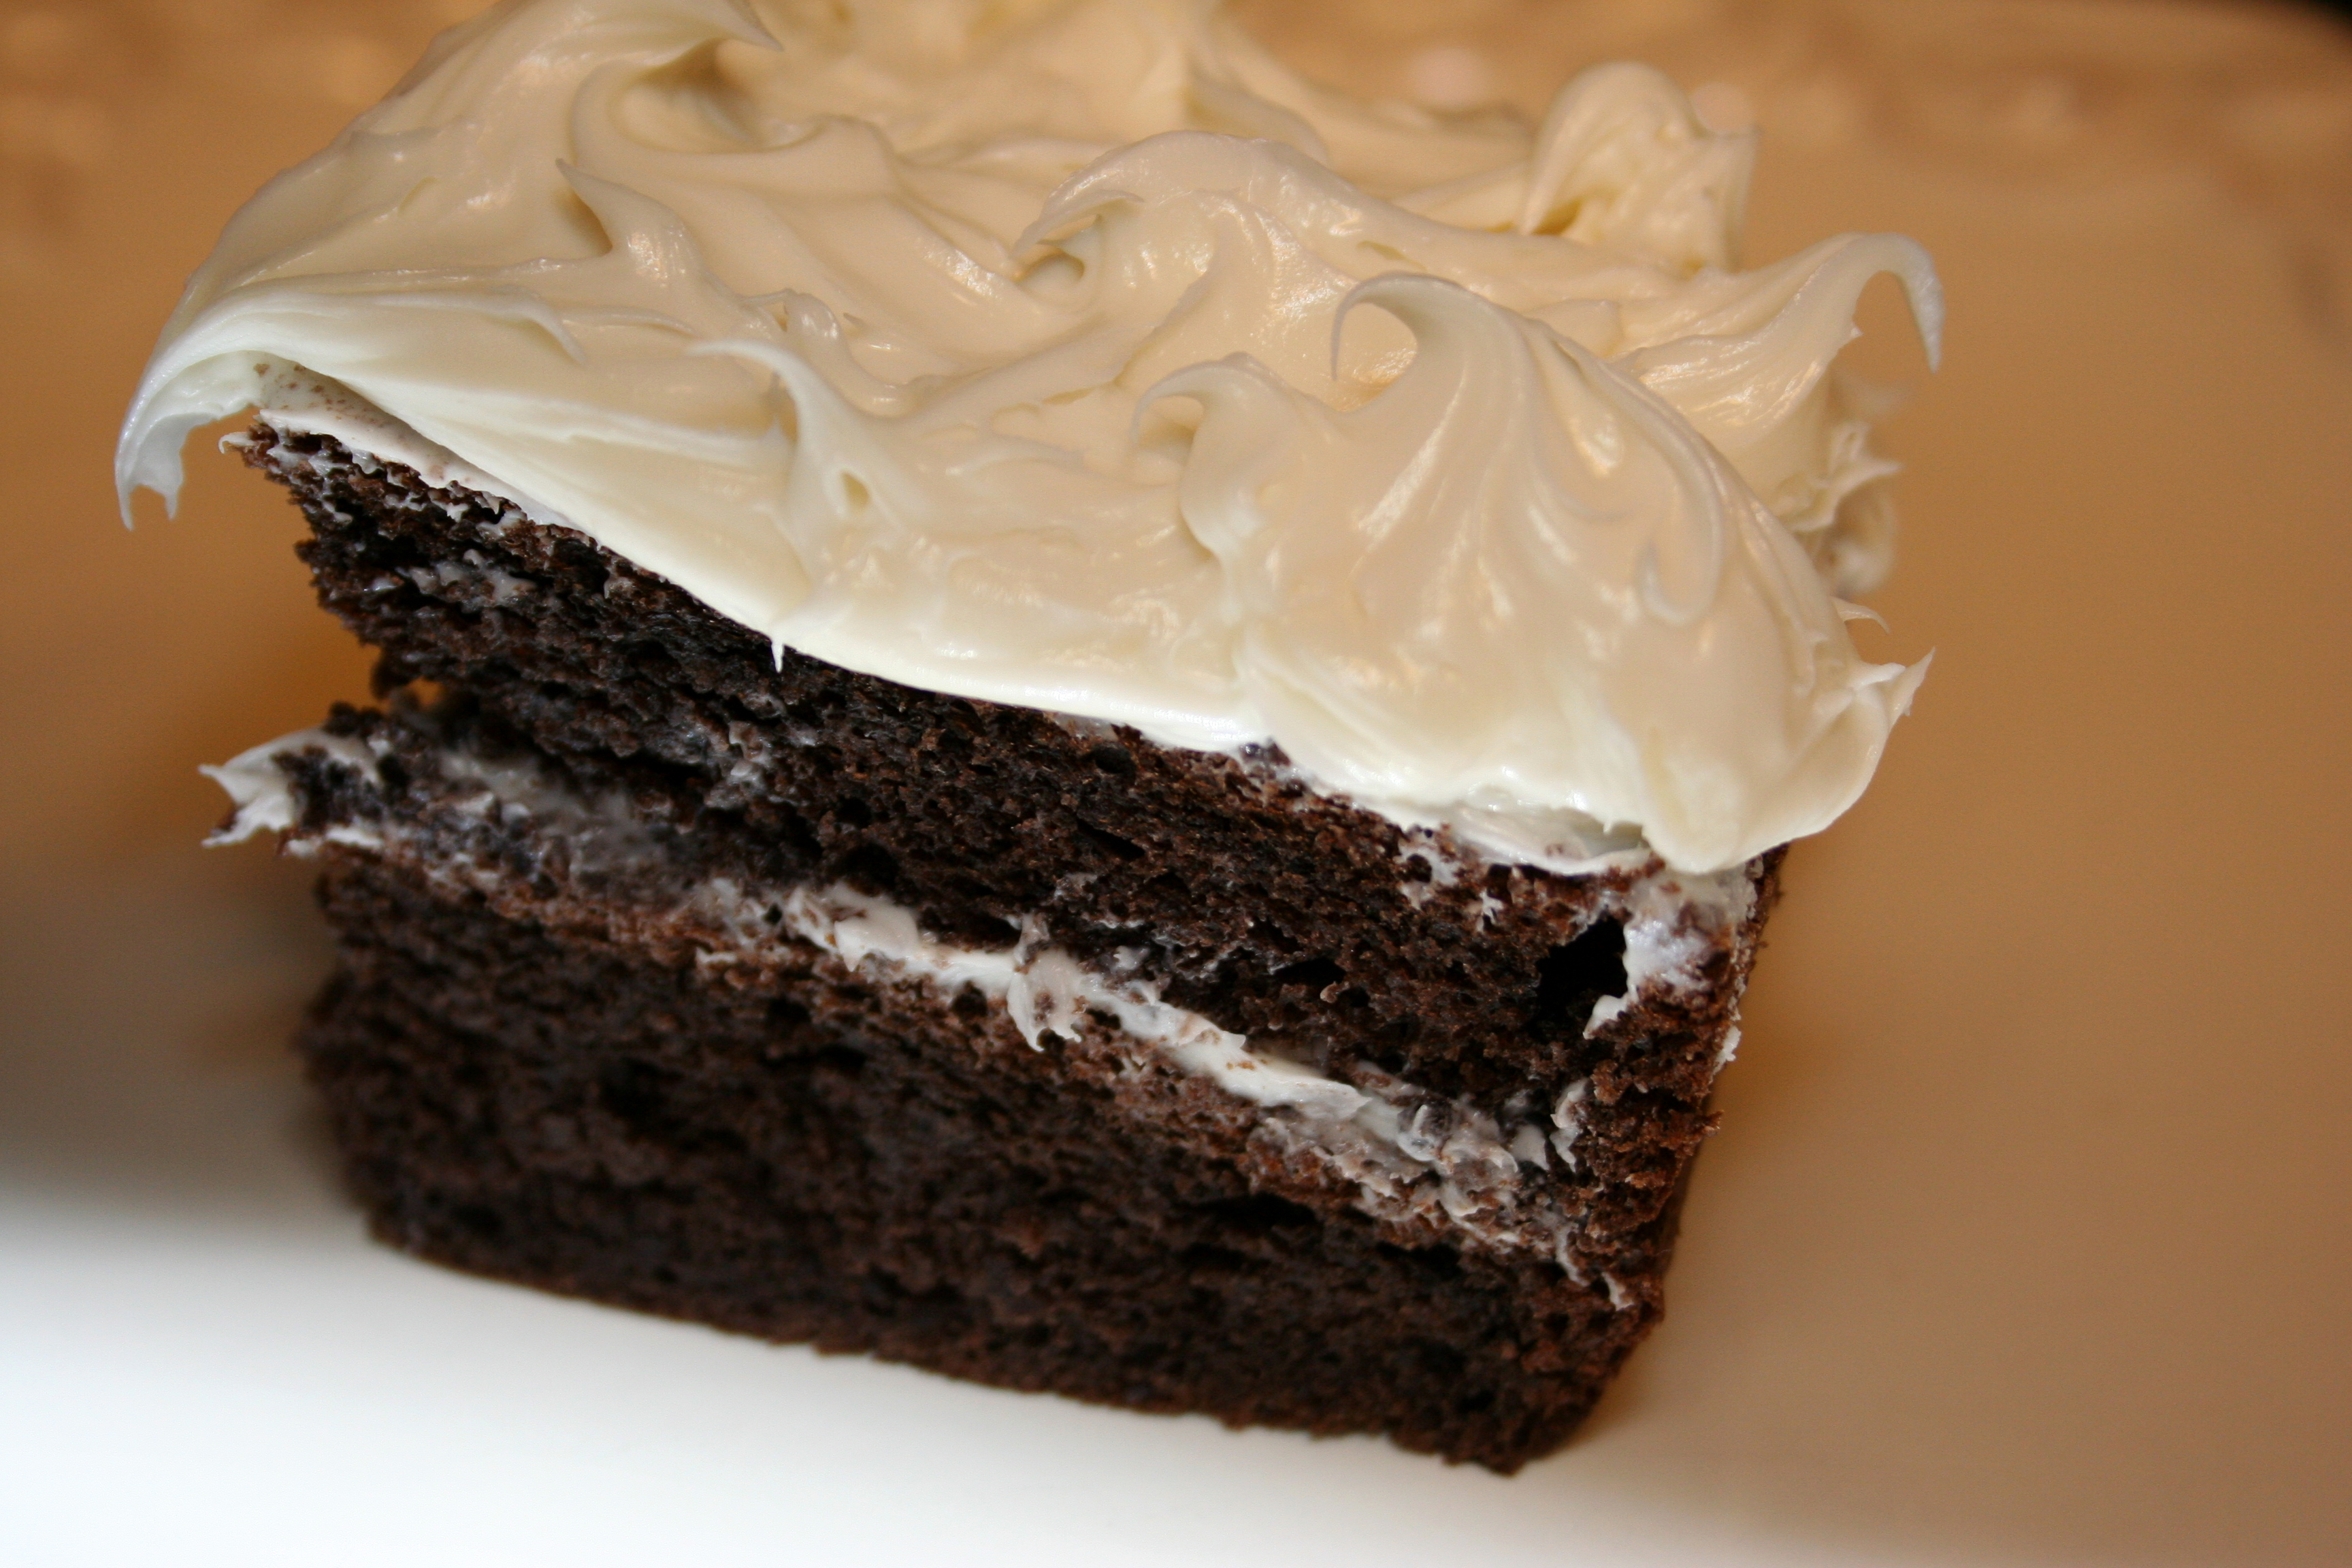 Images Of Cake With Icing : File:Chocolate cake with white icing.JPG